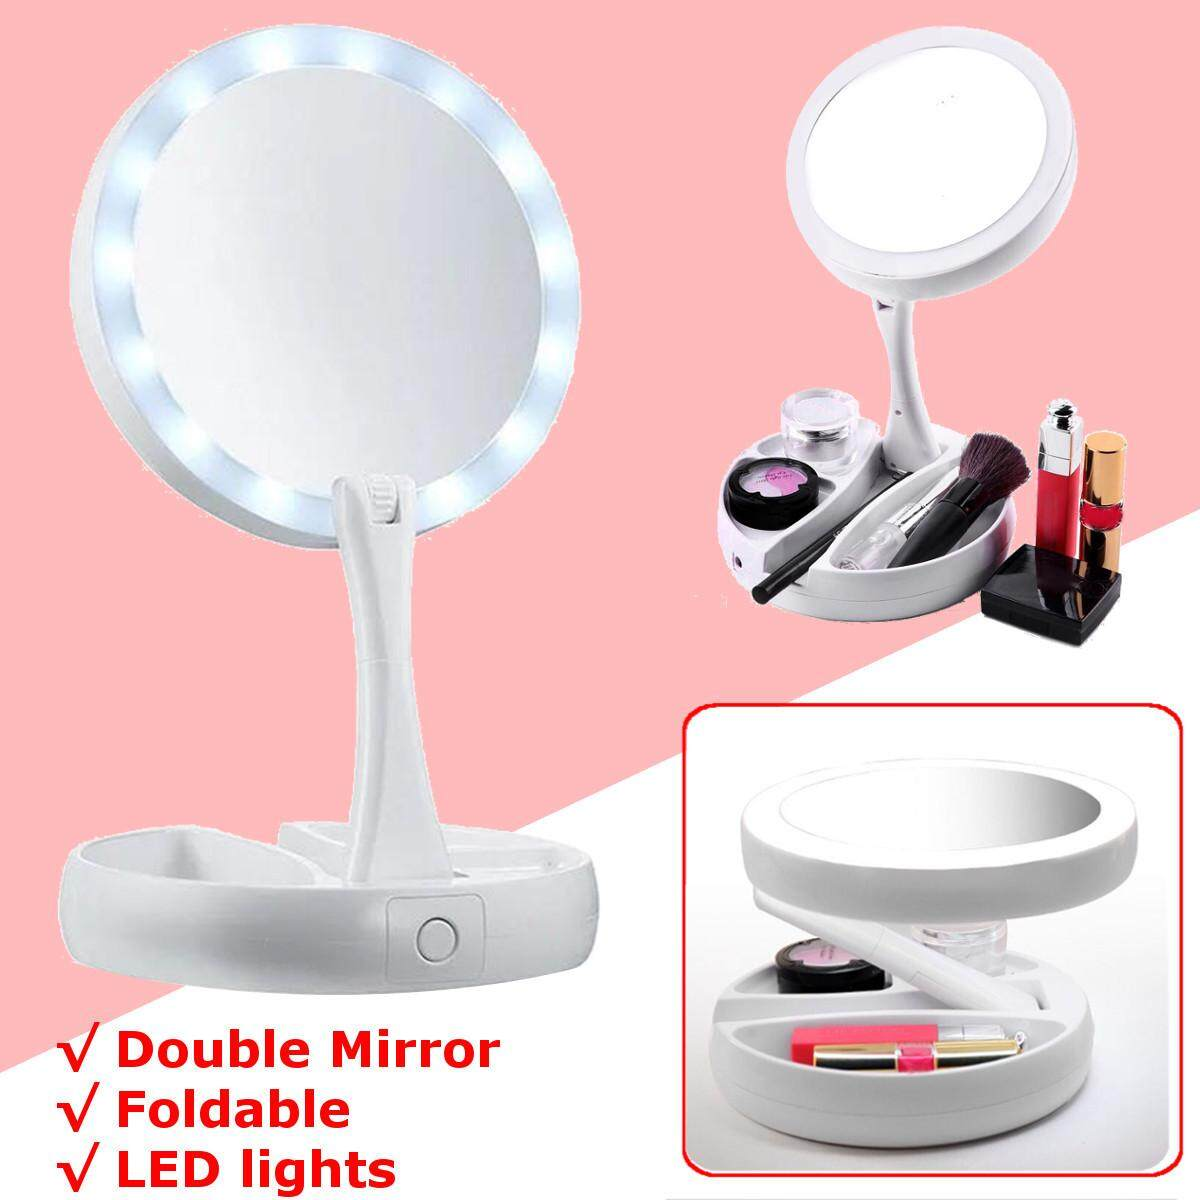 My Fold Away Mirror LED-illuminated Double Sided 10x magnification Makeup Mirror